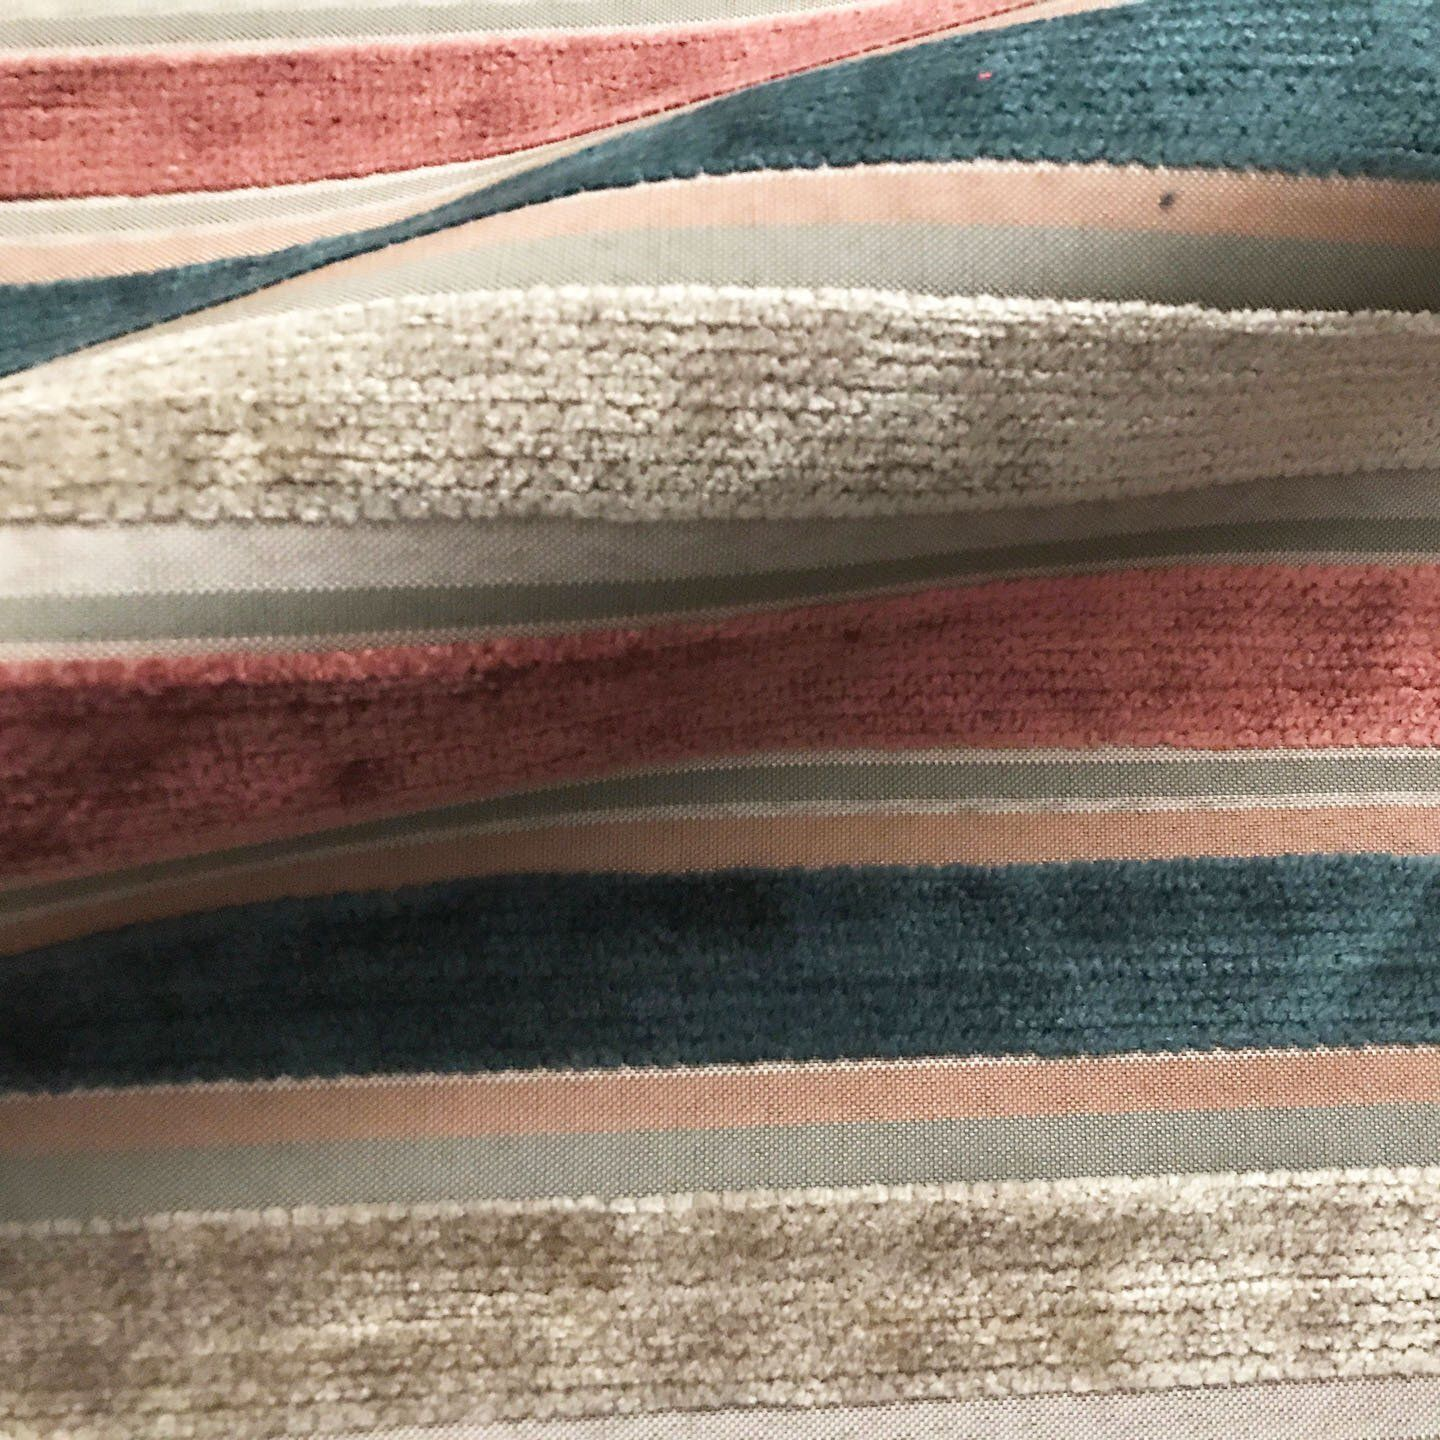 Multicolored Retro Stripe Velvet Upholstery Fabric 54 #velvetupholsteryfabric